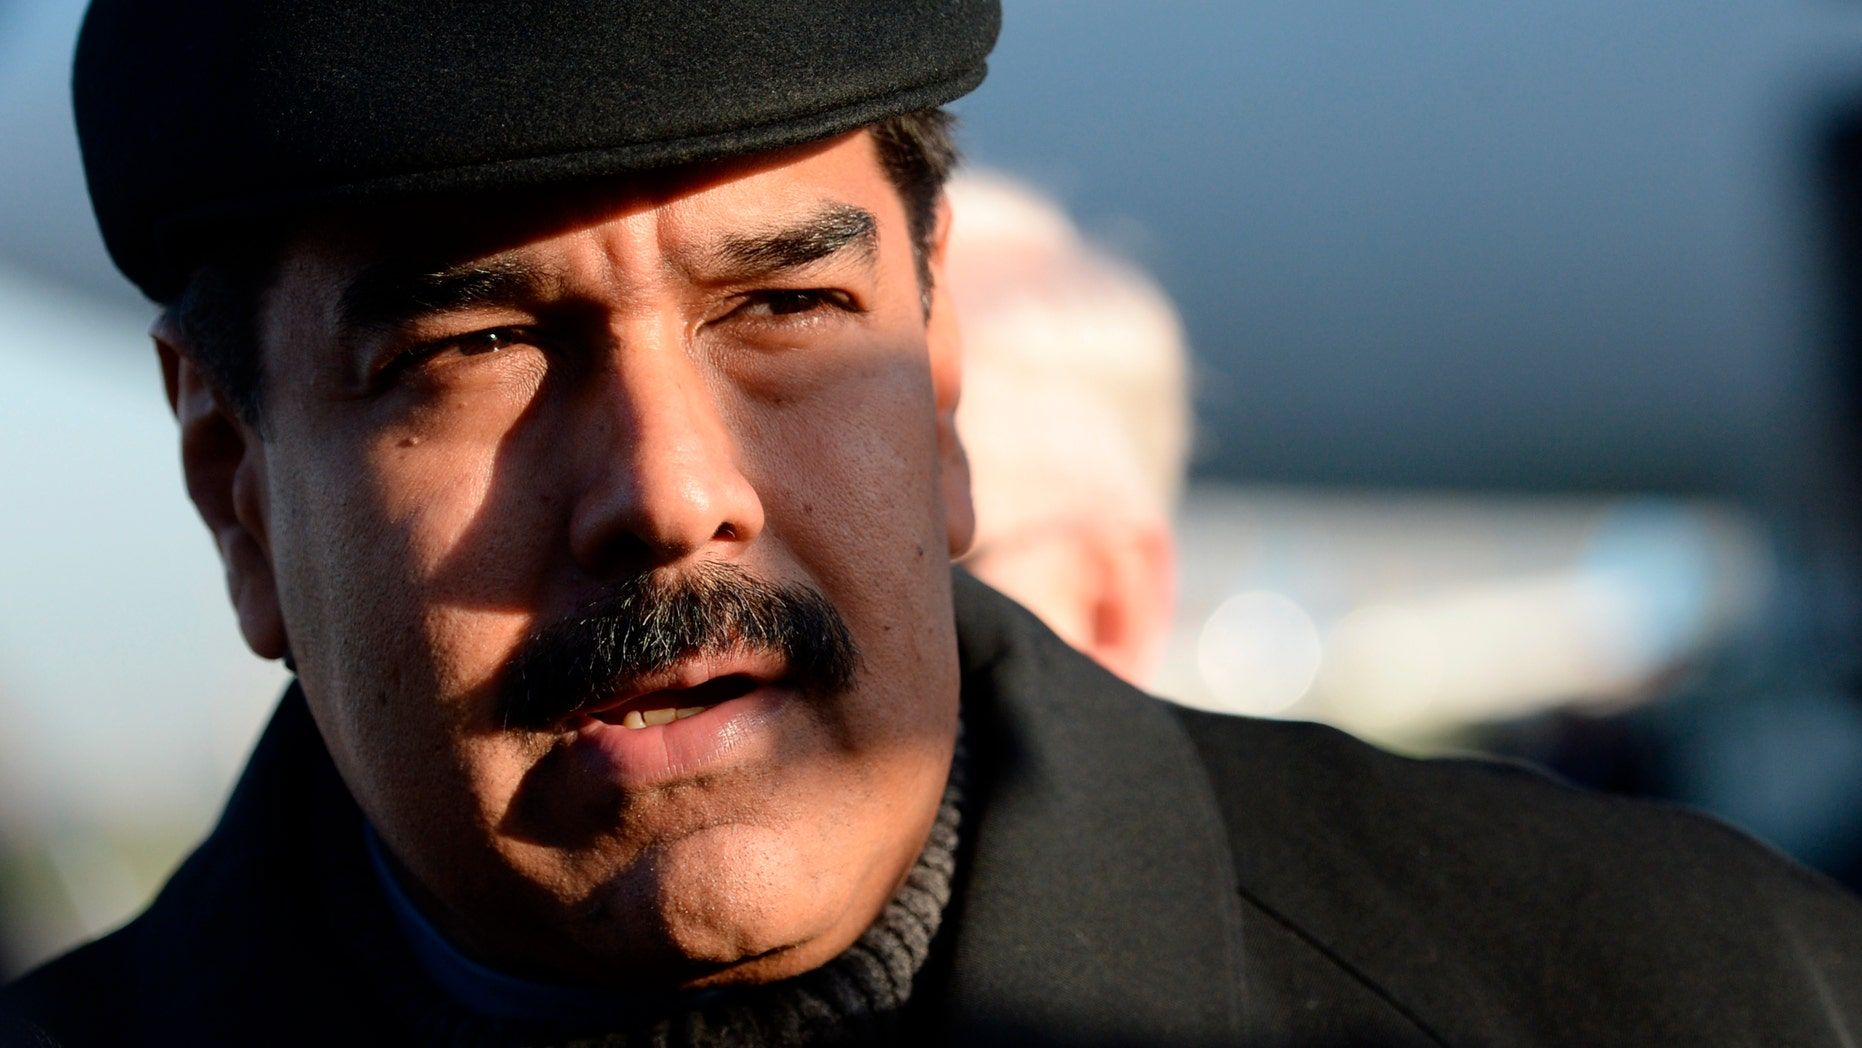 FILE - In this Friday, May 8, 2015, file photo, Venezuela's President Nicolas Maduro is on his arrival at Vnukovo airport in Moscow. Whether its from corruption scandal or stagnant growth, the prospects for the crop of leftist Latin American presidents that have been running the region since the start of the millennium appear to be dimming. No leader has been harder hit than Venezuelan President Nicolas Maduro, who's approval ratings have tumbled amid the crisis to 28 percent, near the lowest in 16 years of socialist rule, and while theres no sign the sometimes violent street protests that overwhelmed the country a year ago will return anytime soon, polls indicate that the opposition will coast to victory in legislative elections expected to take place by year end. (RIA Novosti Pool Photo via AP, File)